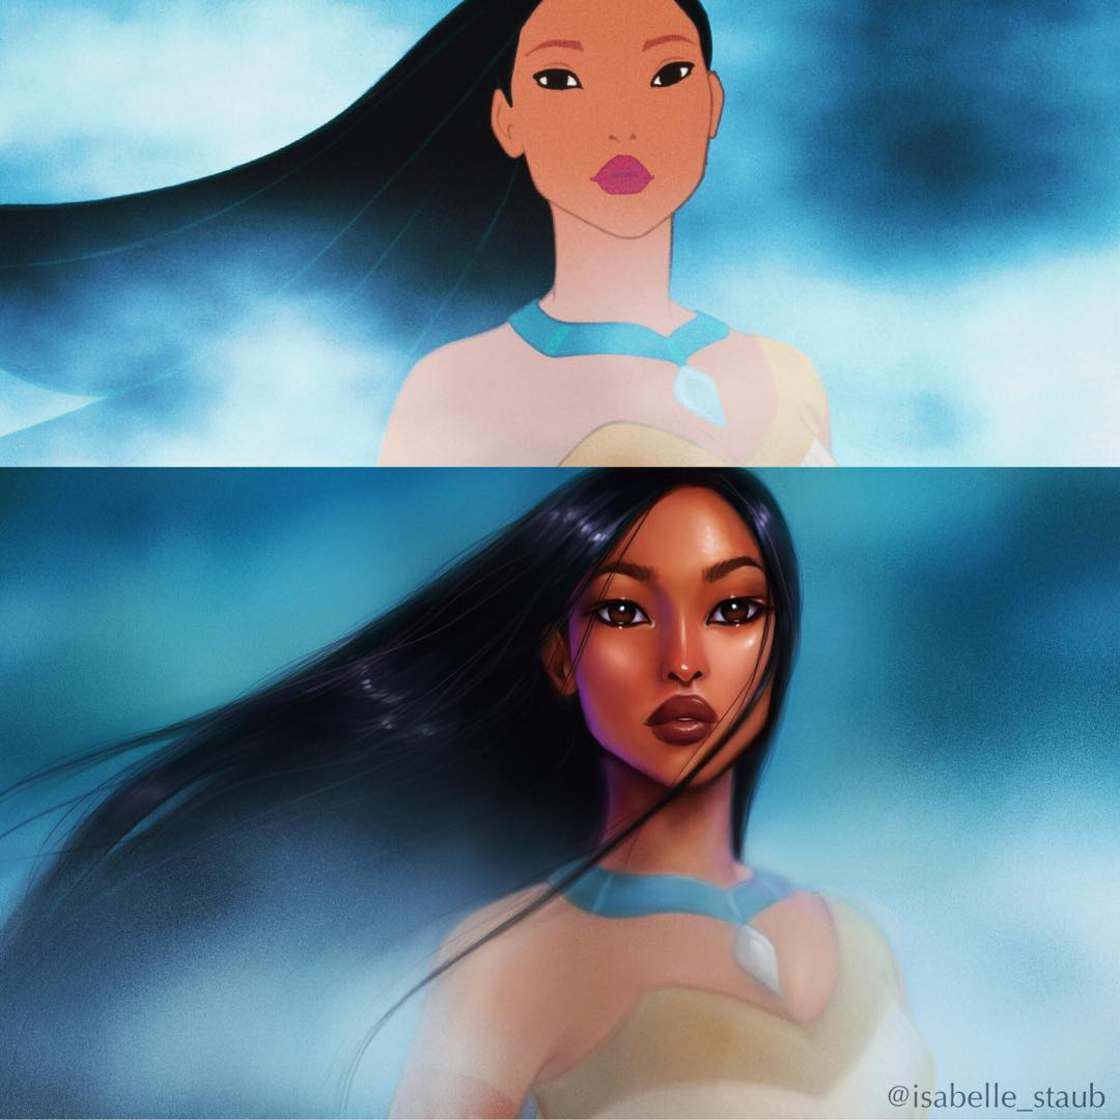 Repainting the famous Disney Princesses